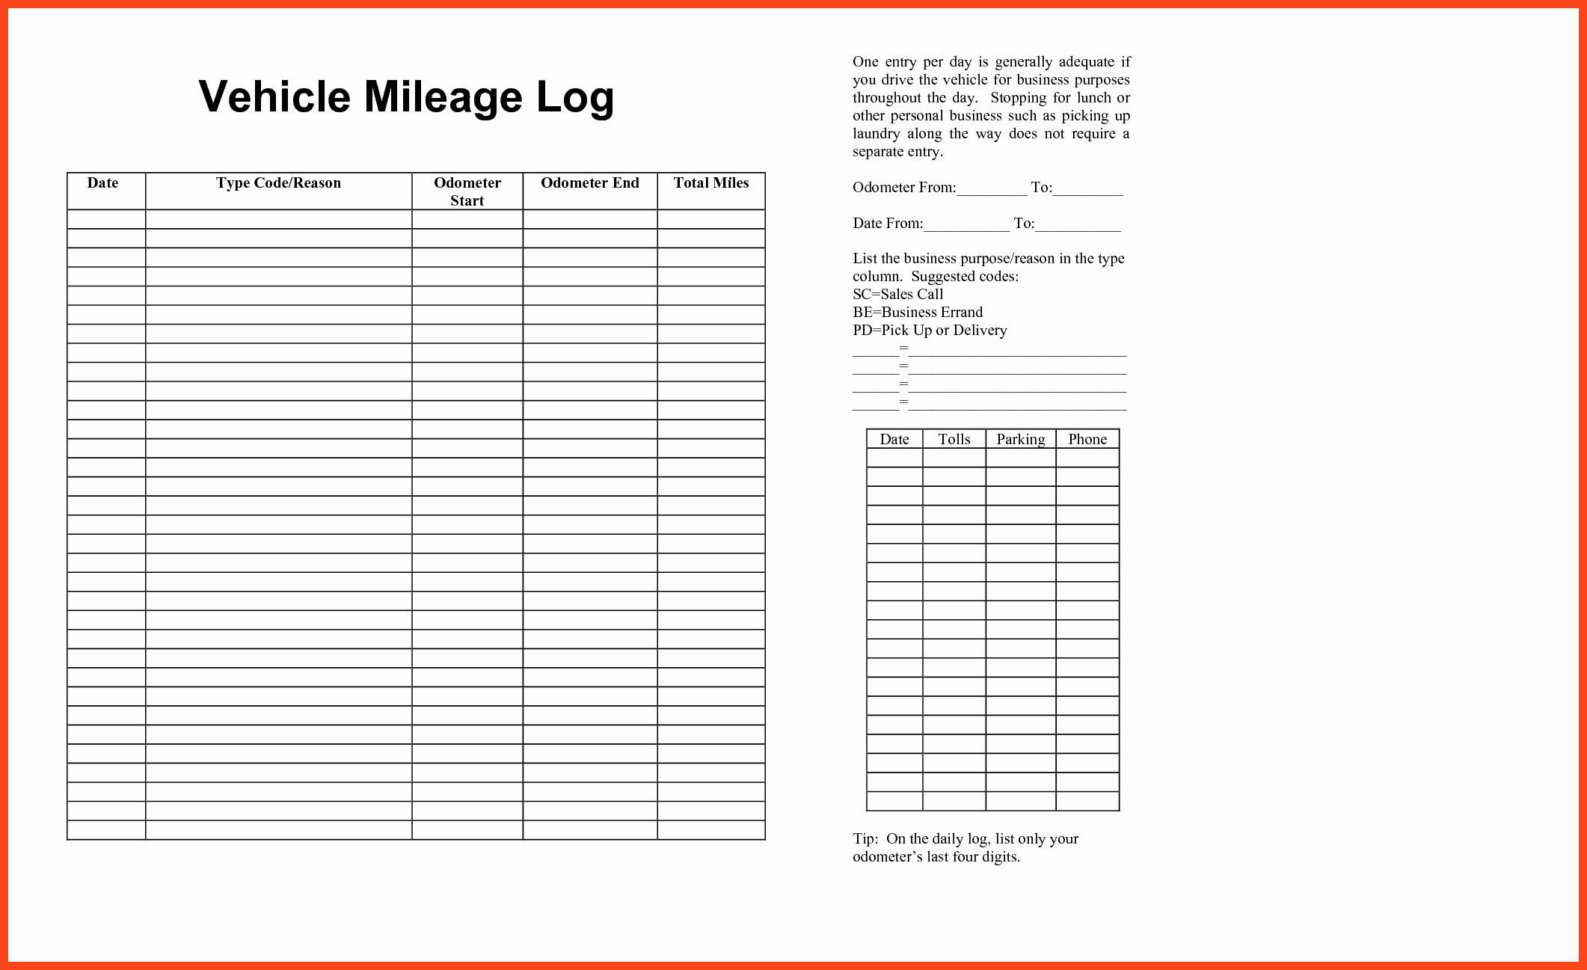 Business Expenses Form Template Free Downloads Business Expense Form Within Business Expenses Template Free Download